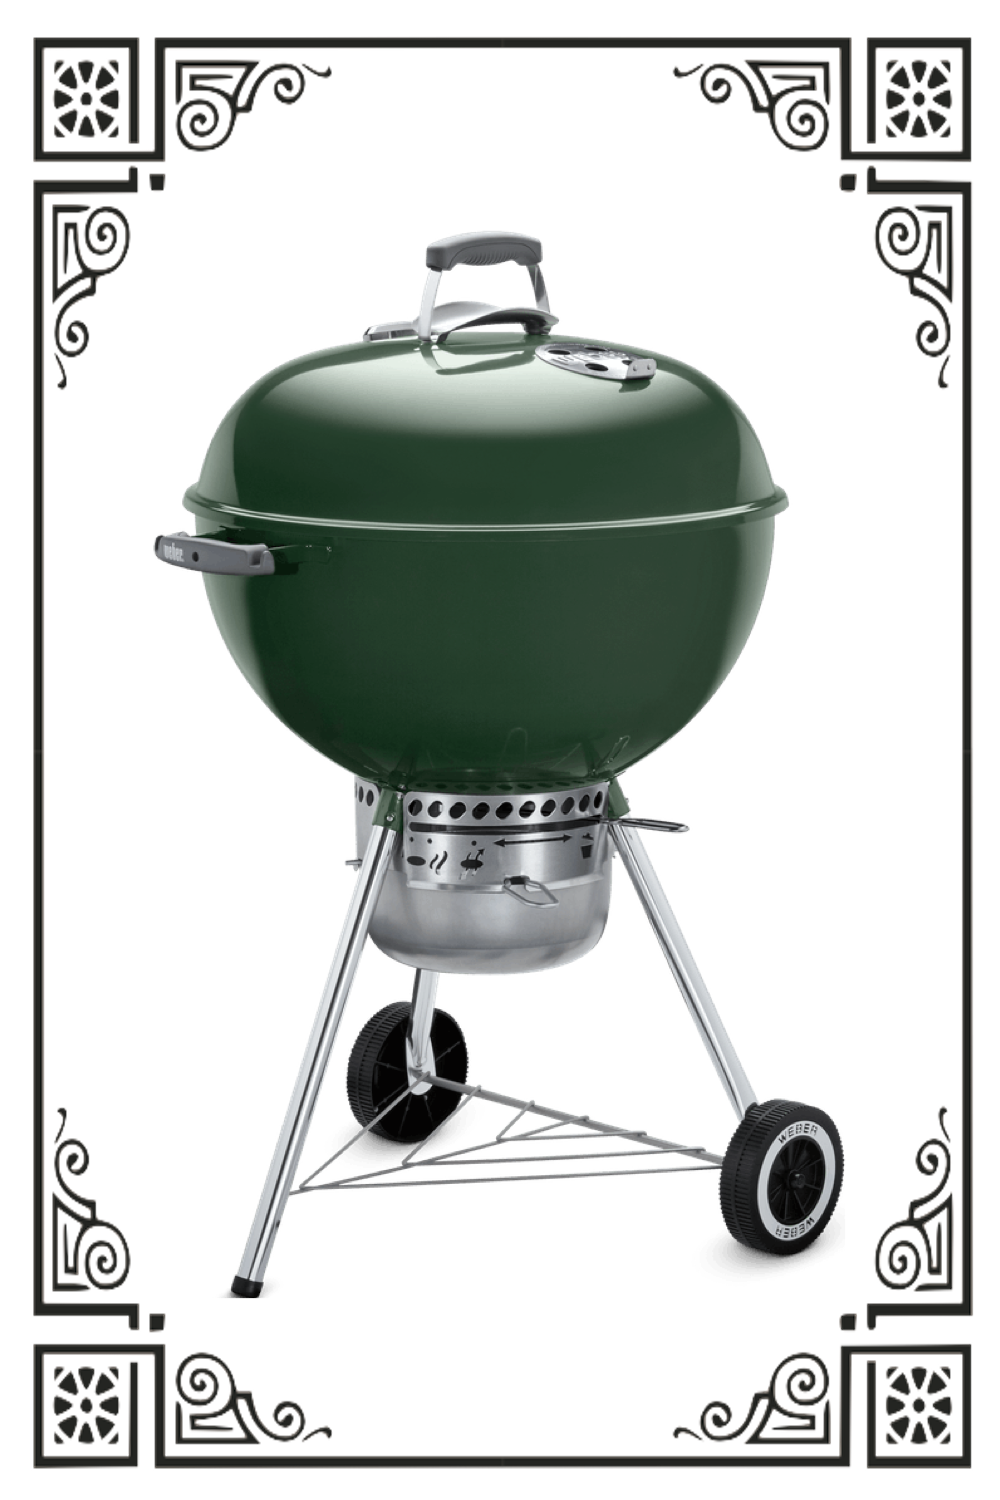 weber-charcoal-grill.png